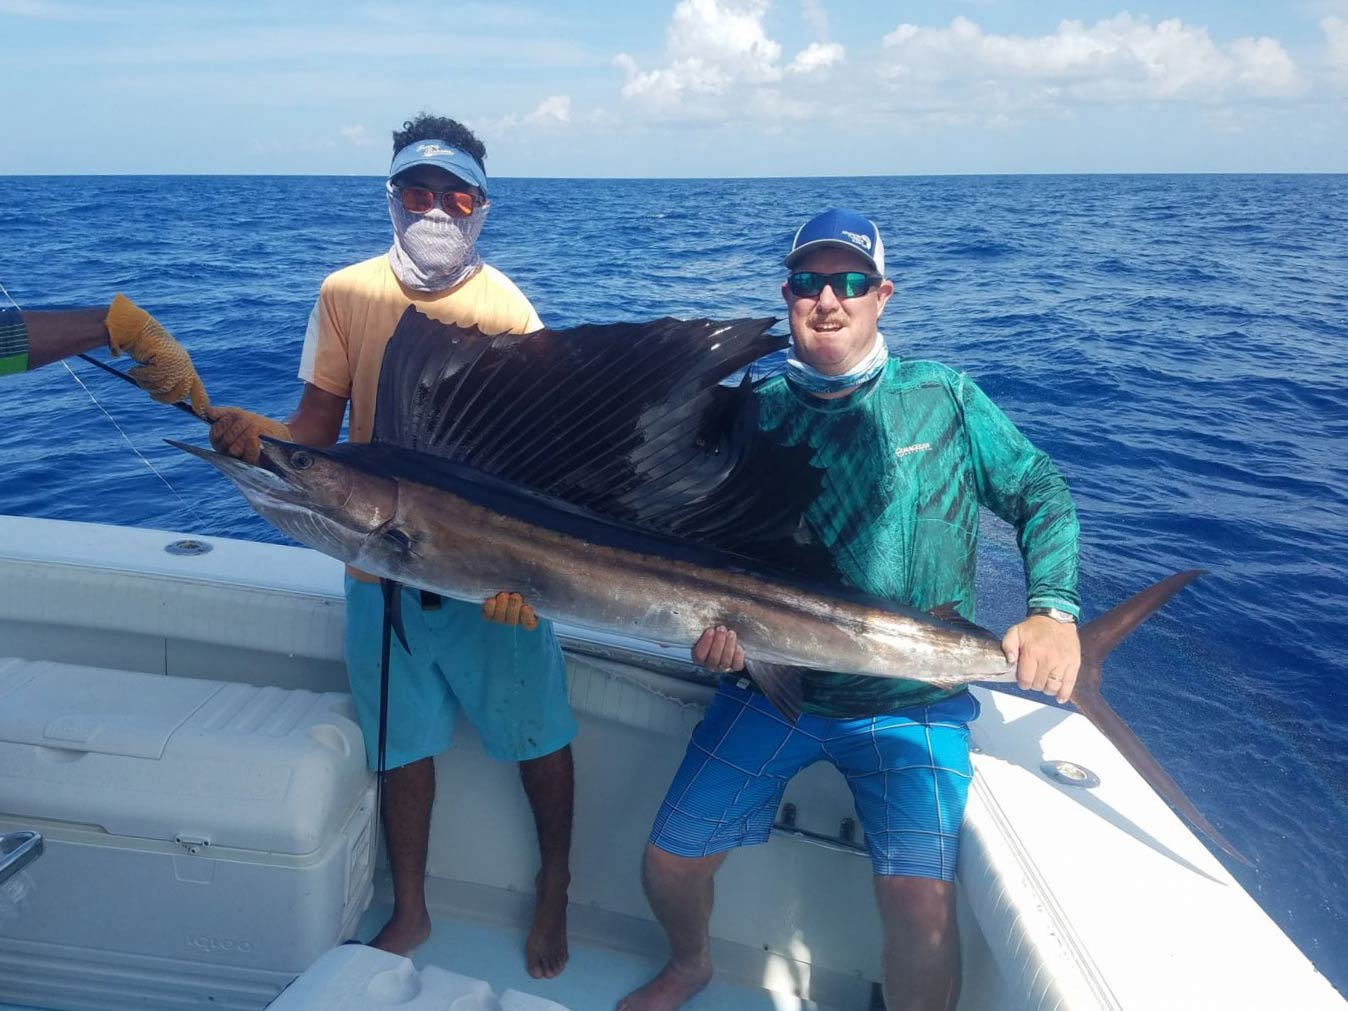 Two anglers standing on a boat holding a massive Sailfish, with water in the background